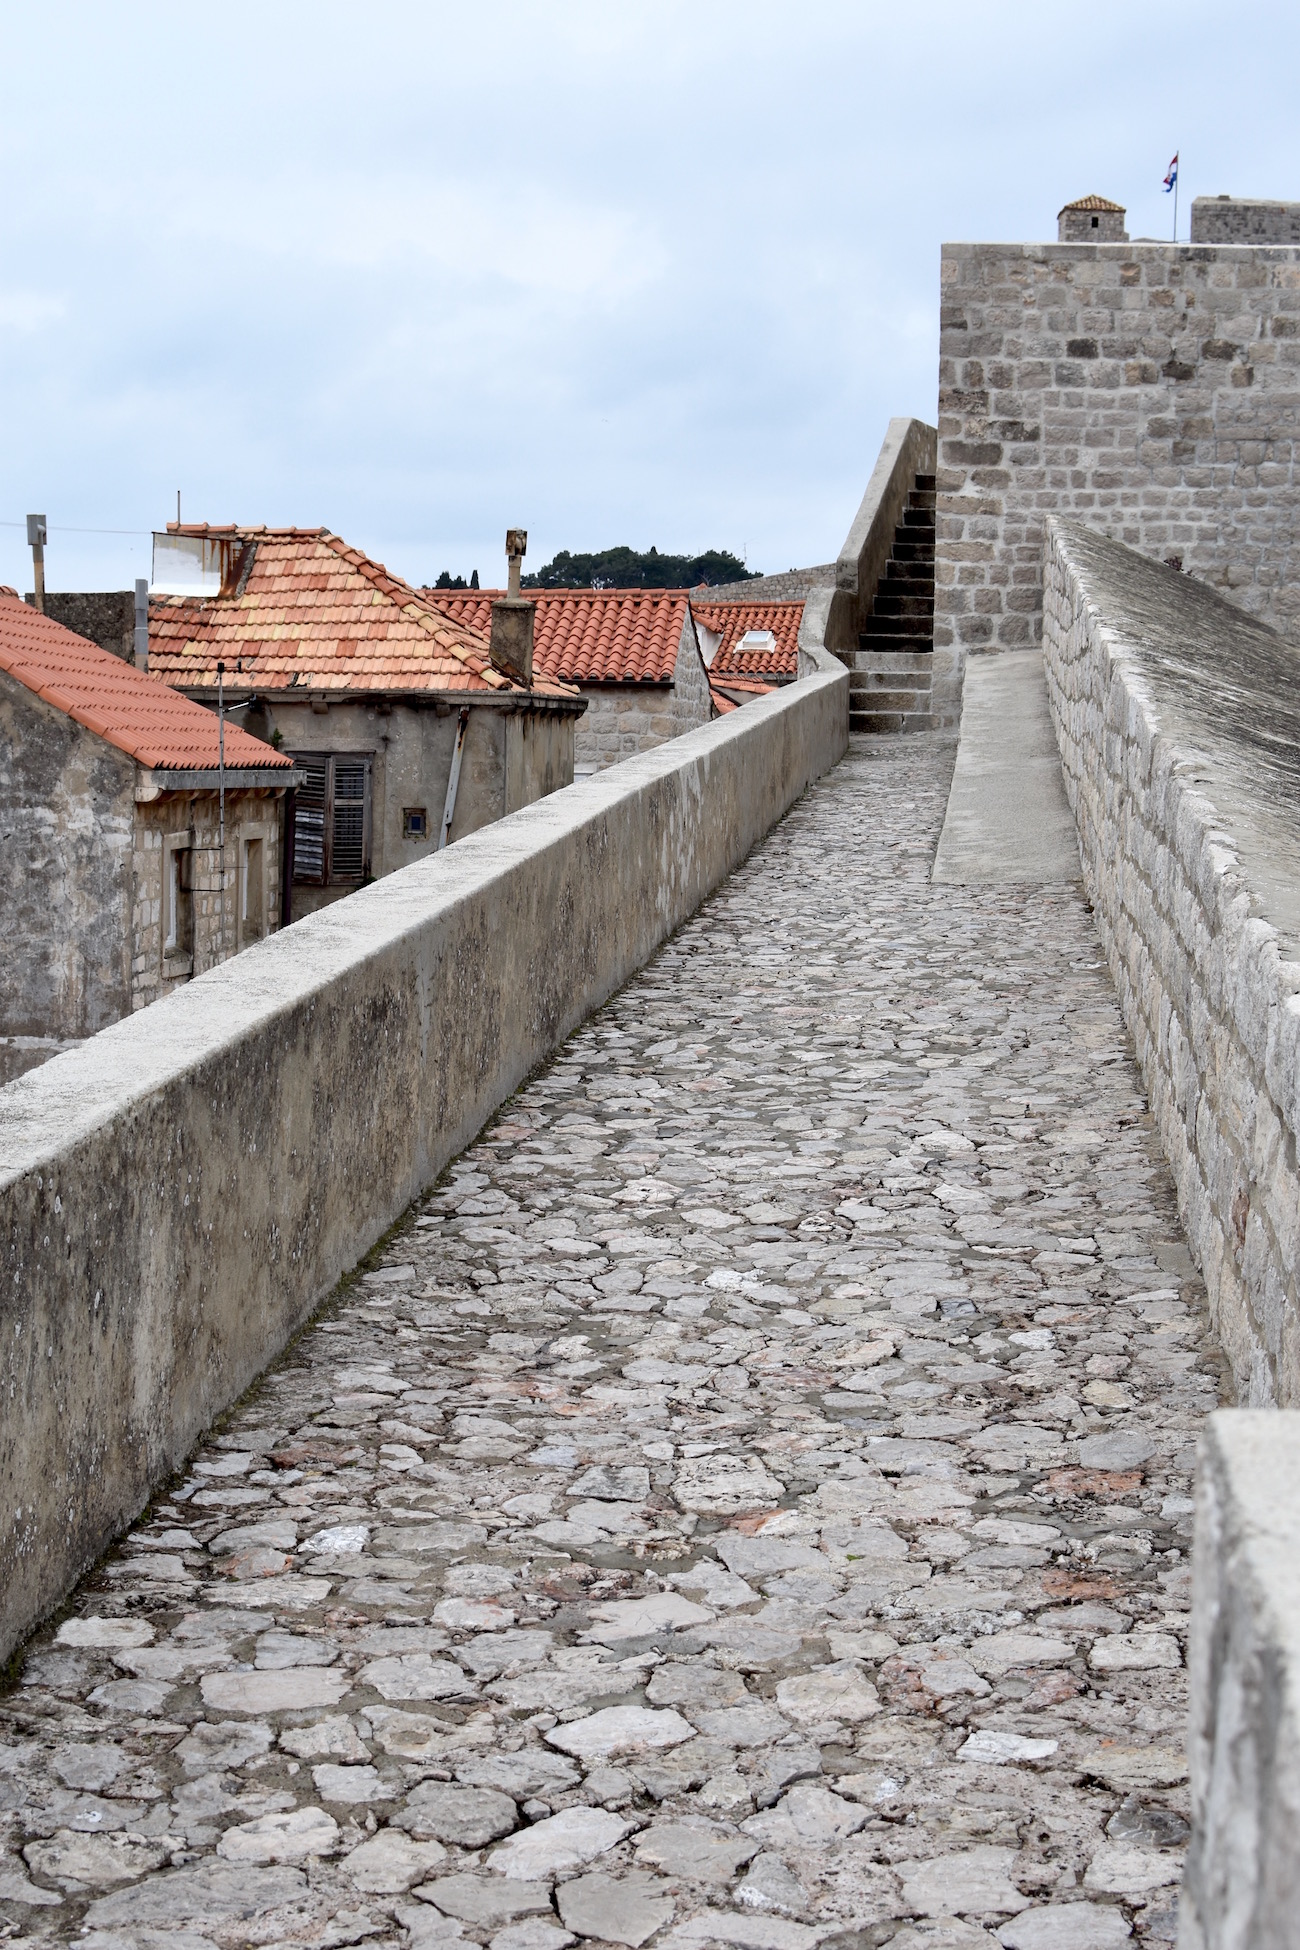 Winter walk along the wall in Dubrovnik, Croatia